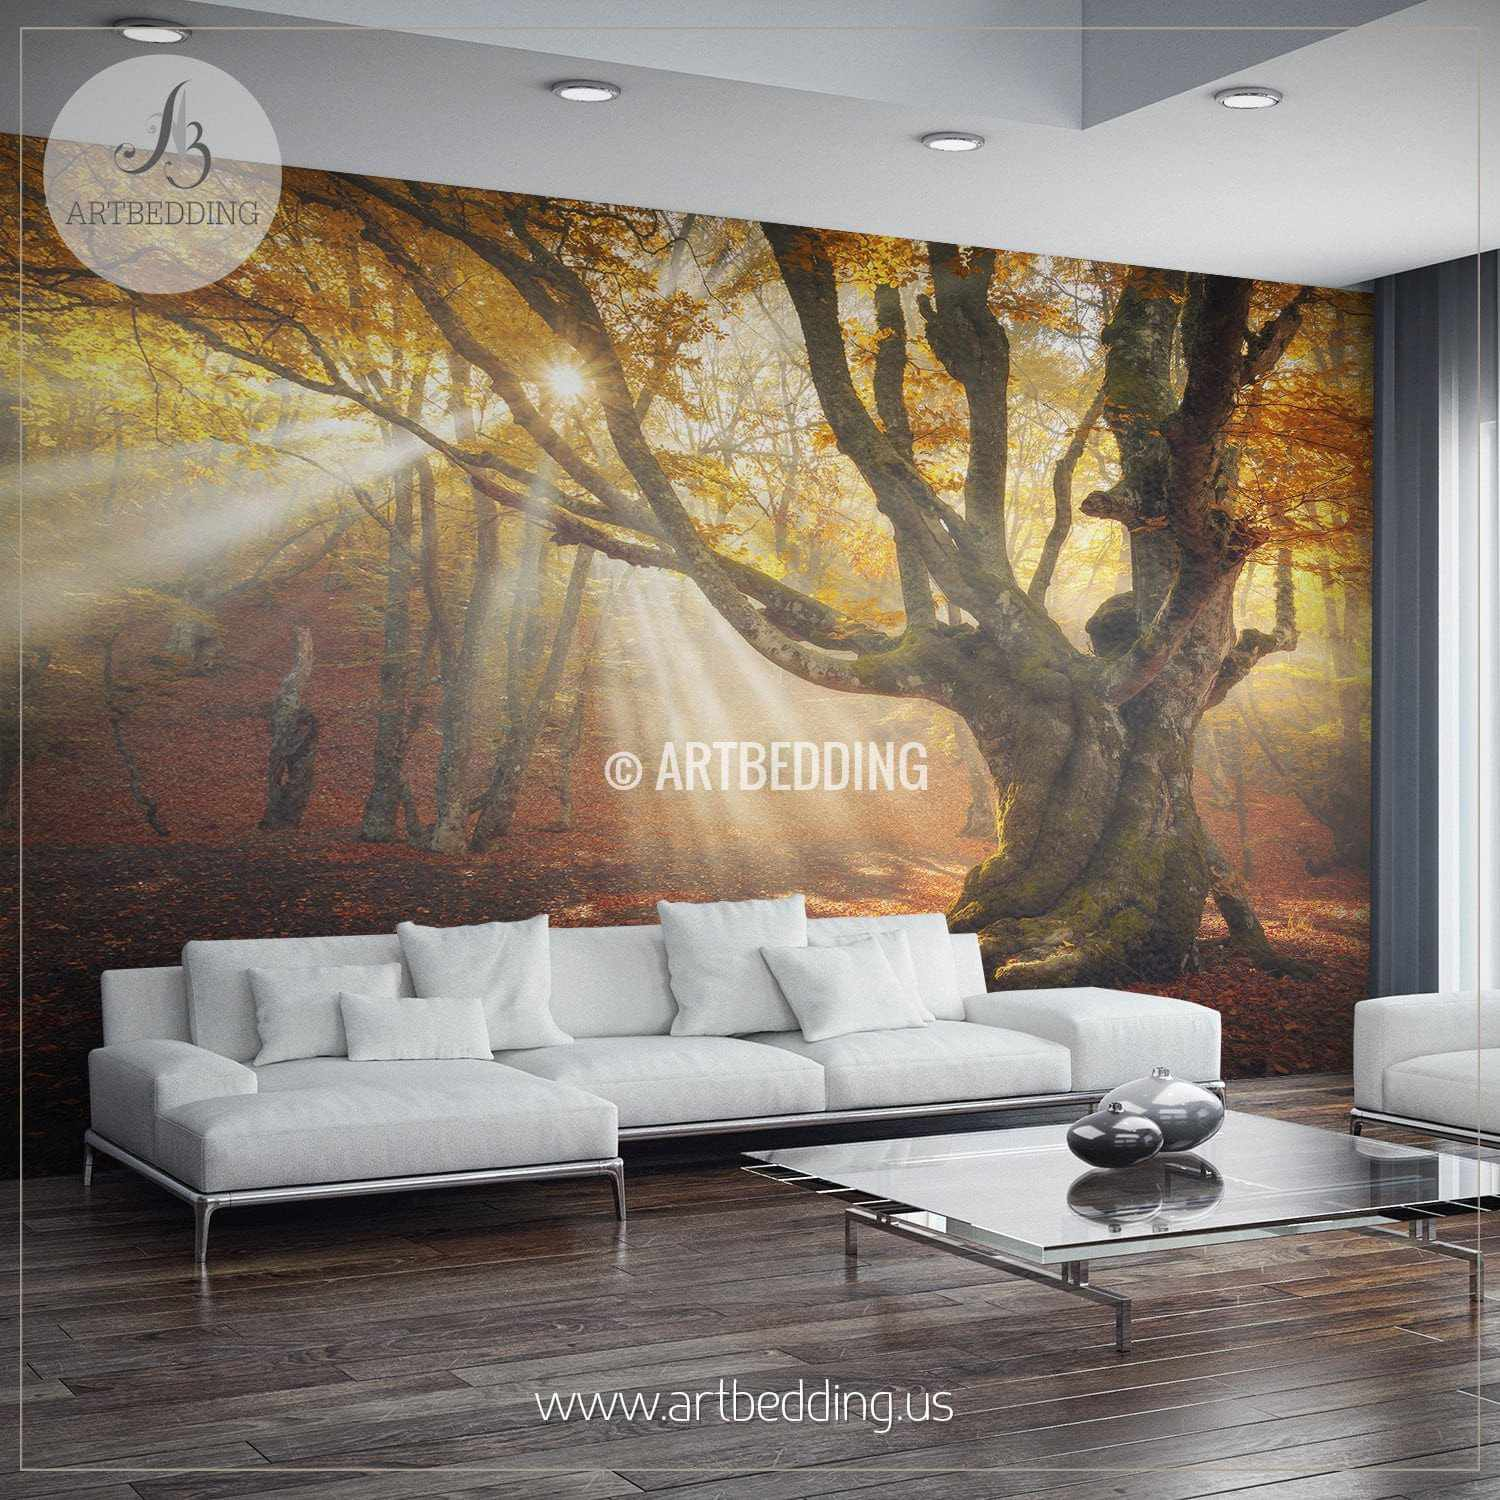 Autumn forest magical old tree photo wall mural artbedding for Autumn forest 216 wall mural